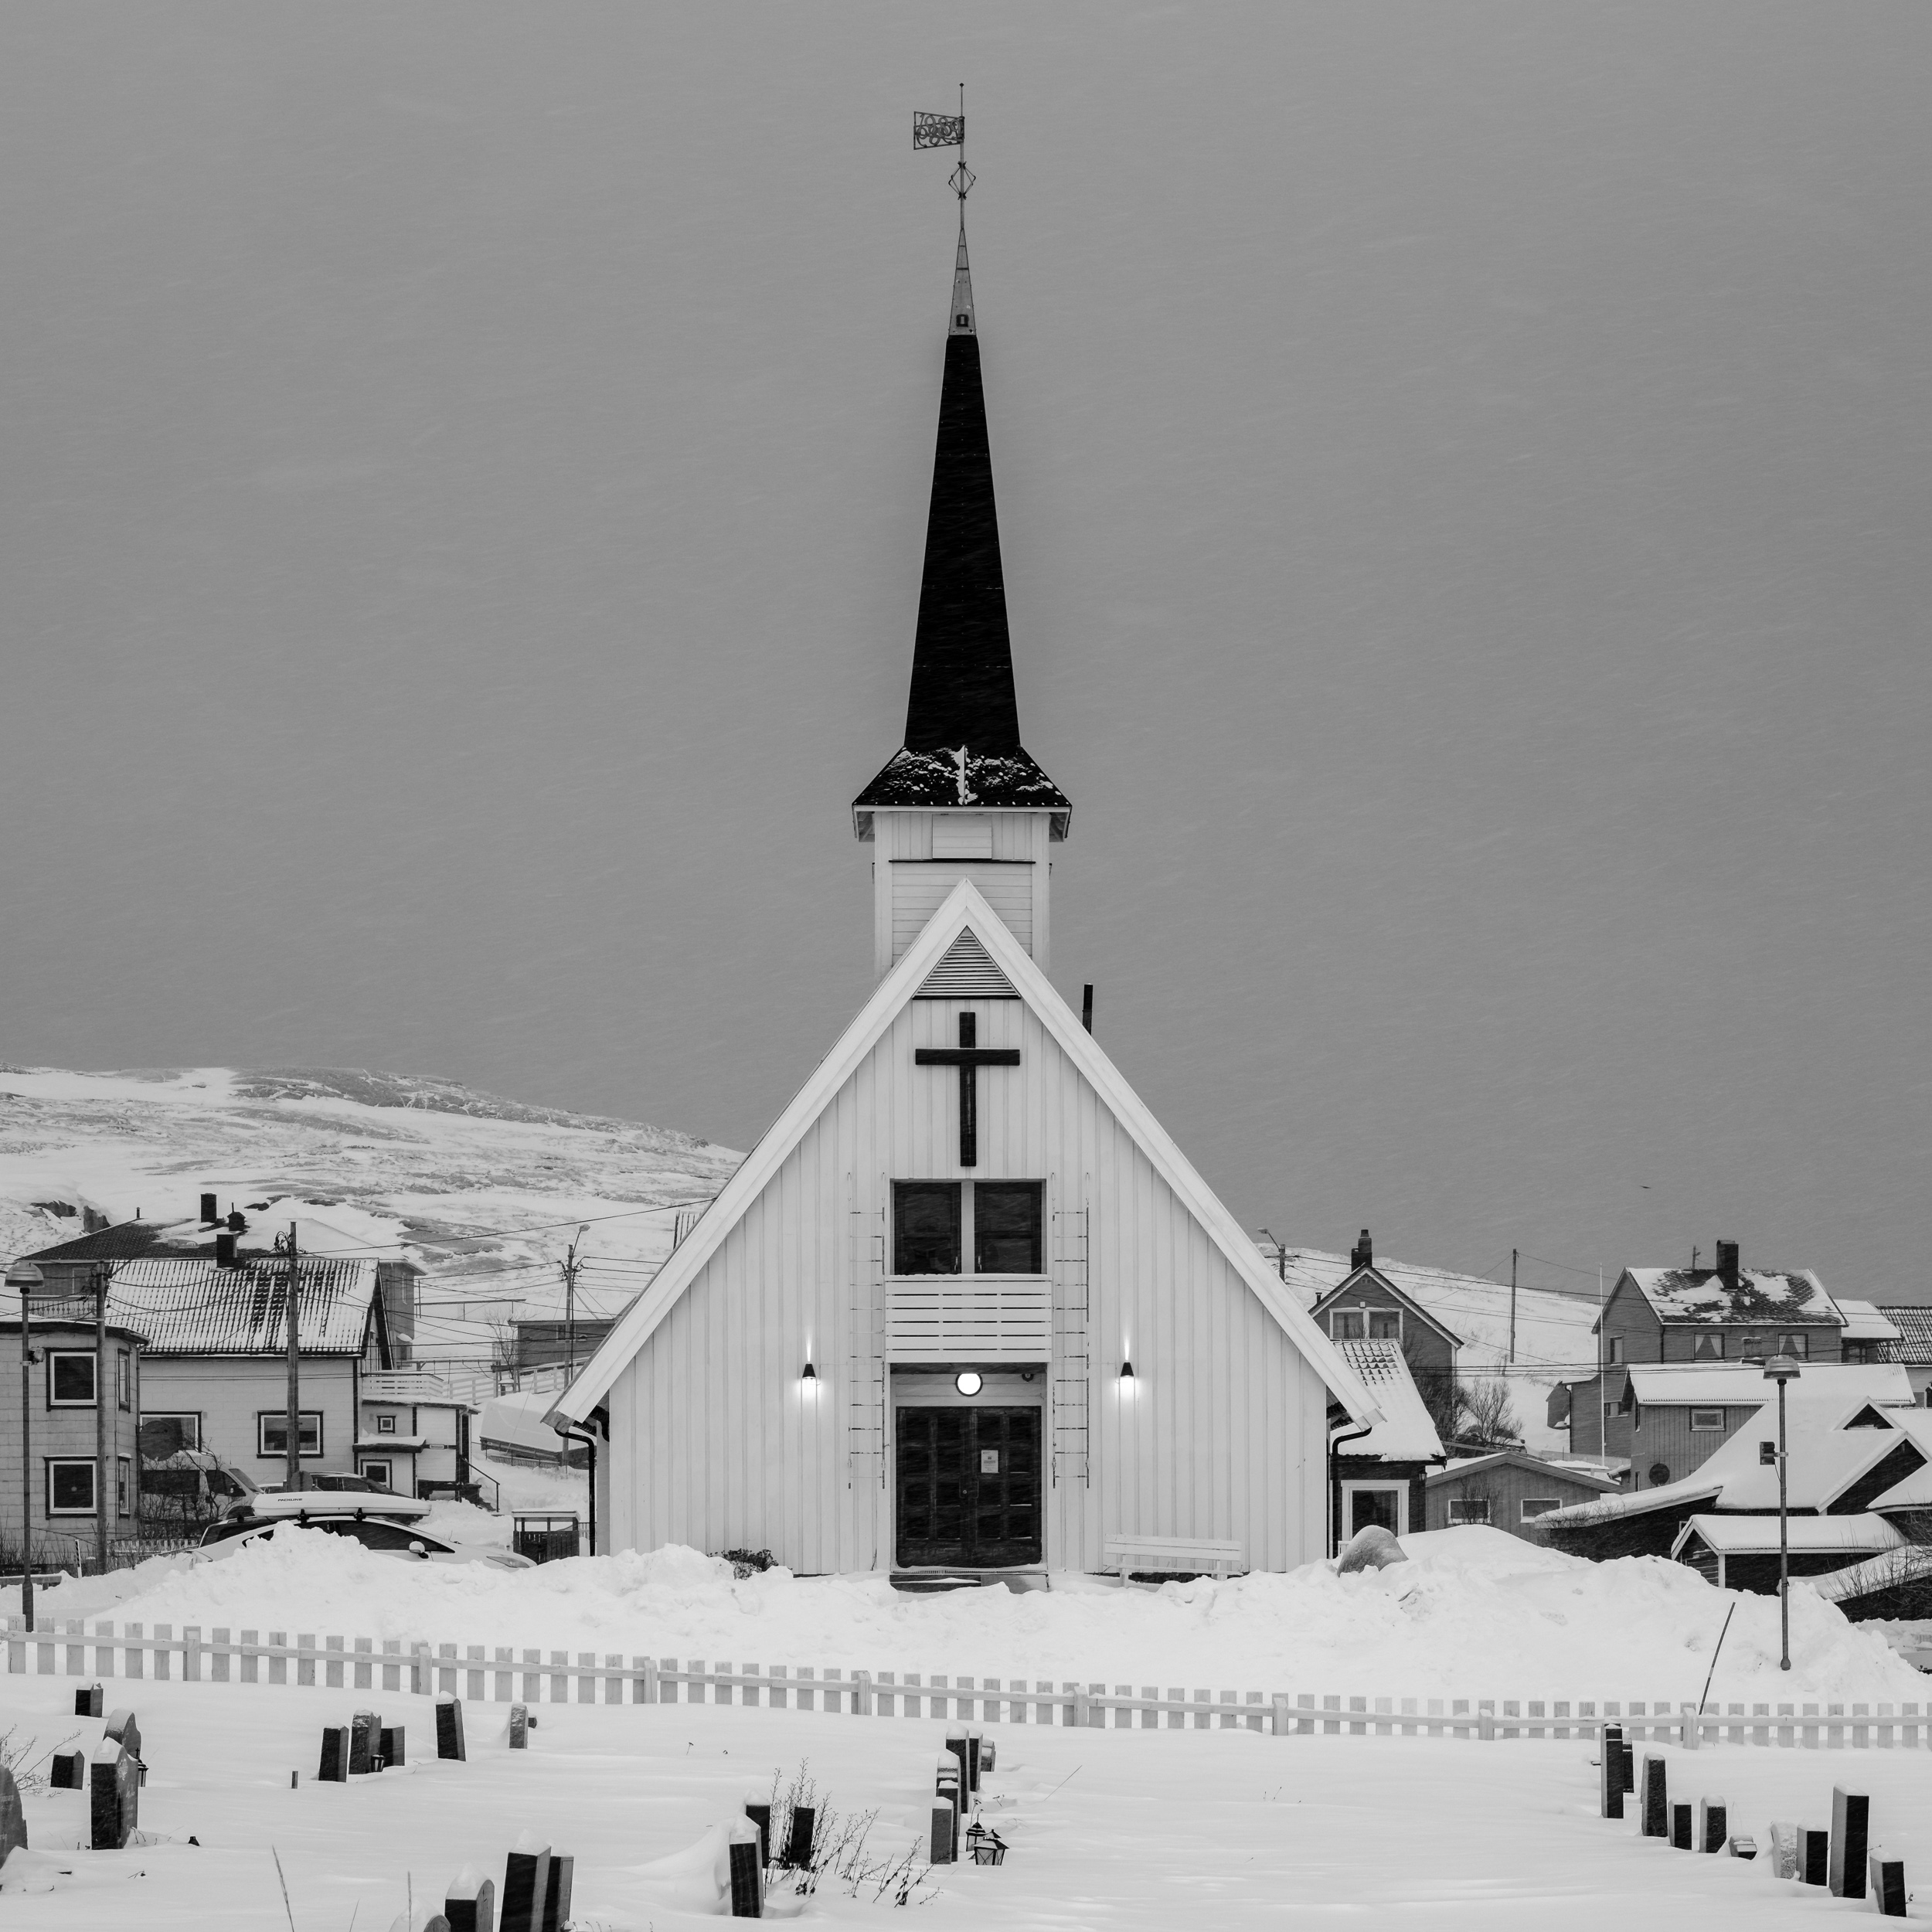 The church in Bugøynes / Fujifilm X-T3 56mm f/8.0 1/60 sec